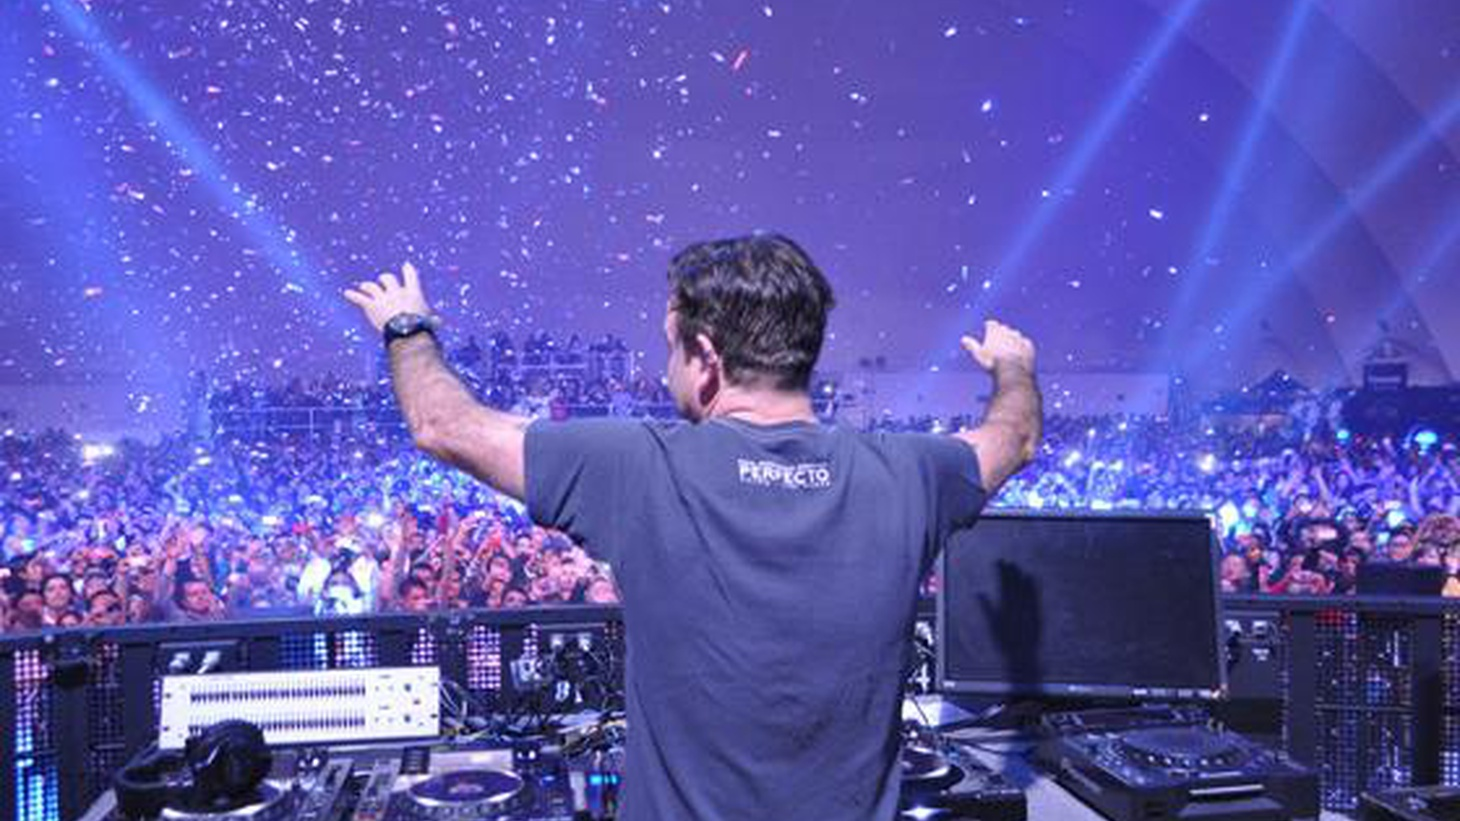 Our first Electrospective guest is veteran DJ and Producer Paul Oakenfold, who sat down with Jason to talk about his own background, the parallels between the dance music craze of the early '90s and today,